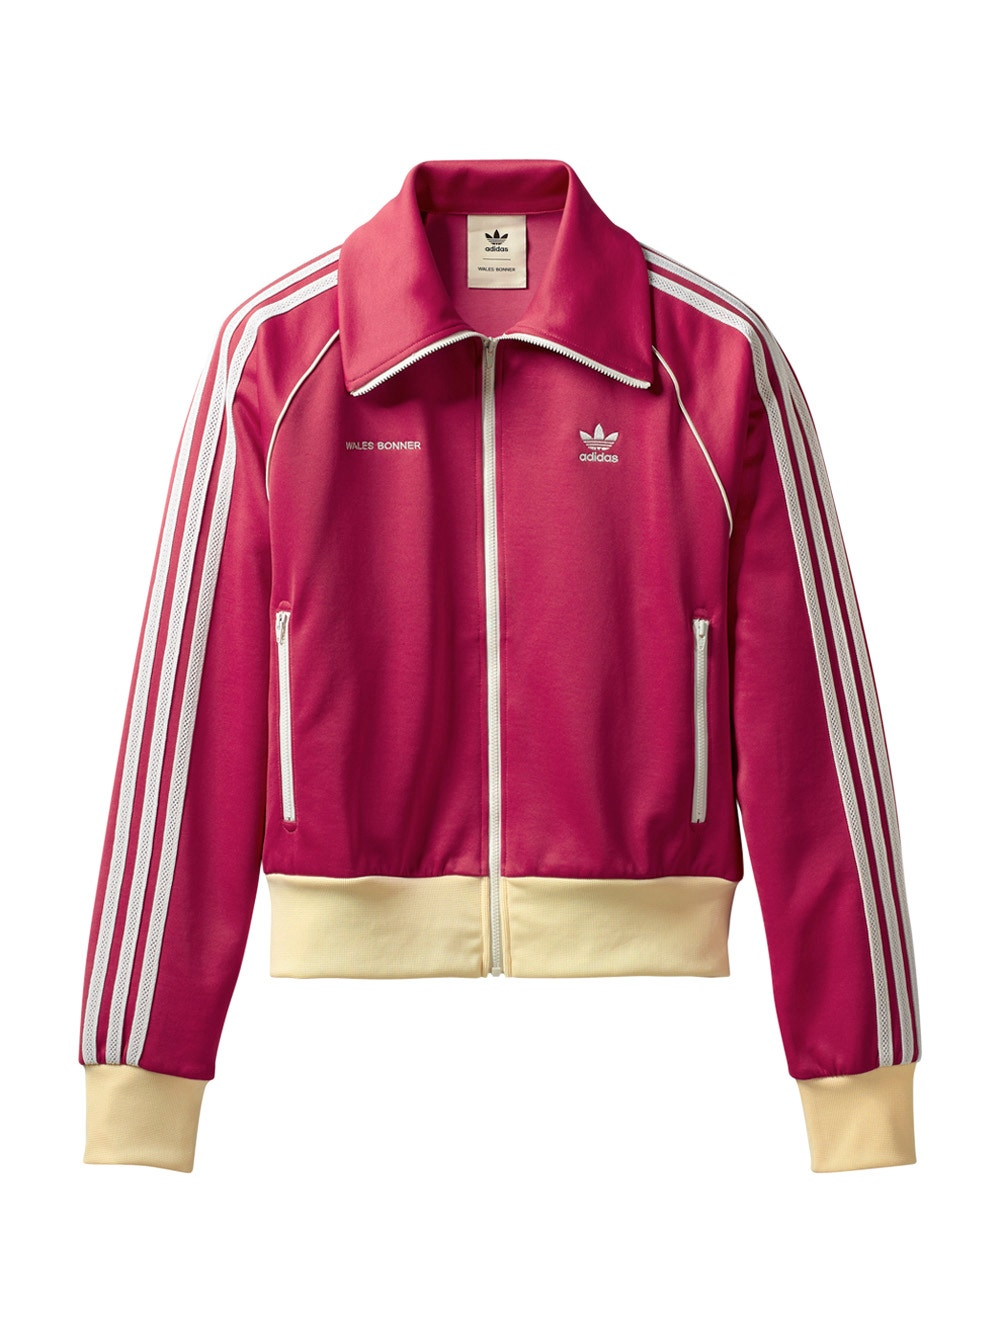 Pink X Wales Bonner 70s Striped Track Jacket